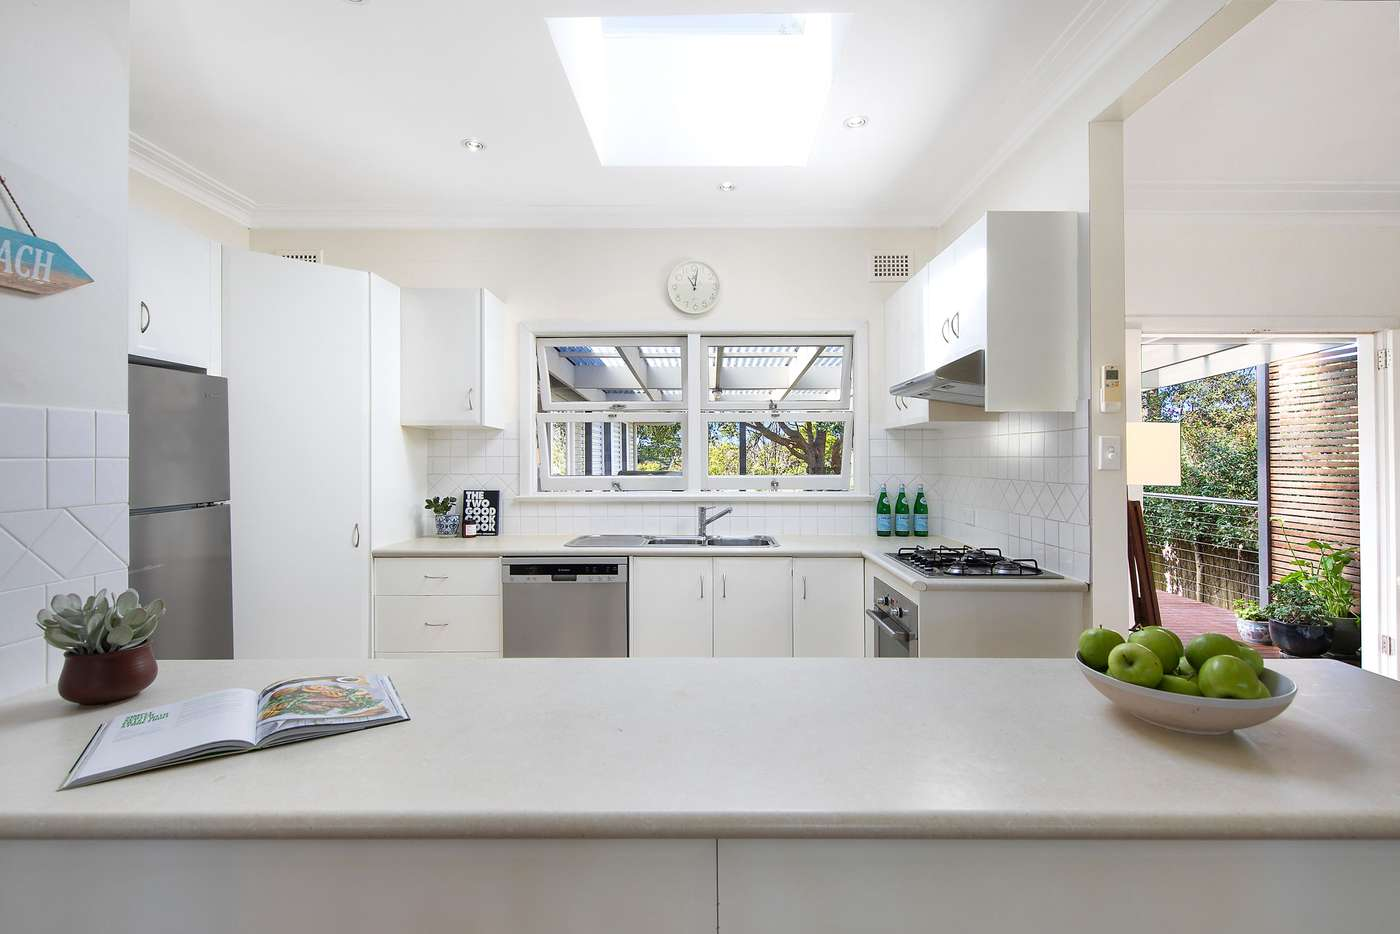 Fifth view of Homely house listing, 28 Wyuna Road, West Pymble NSW 2073